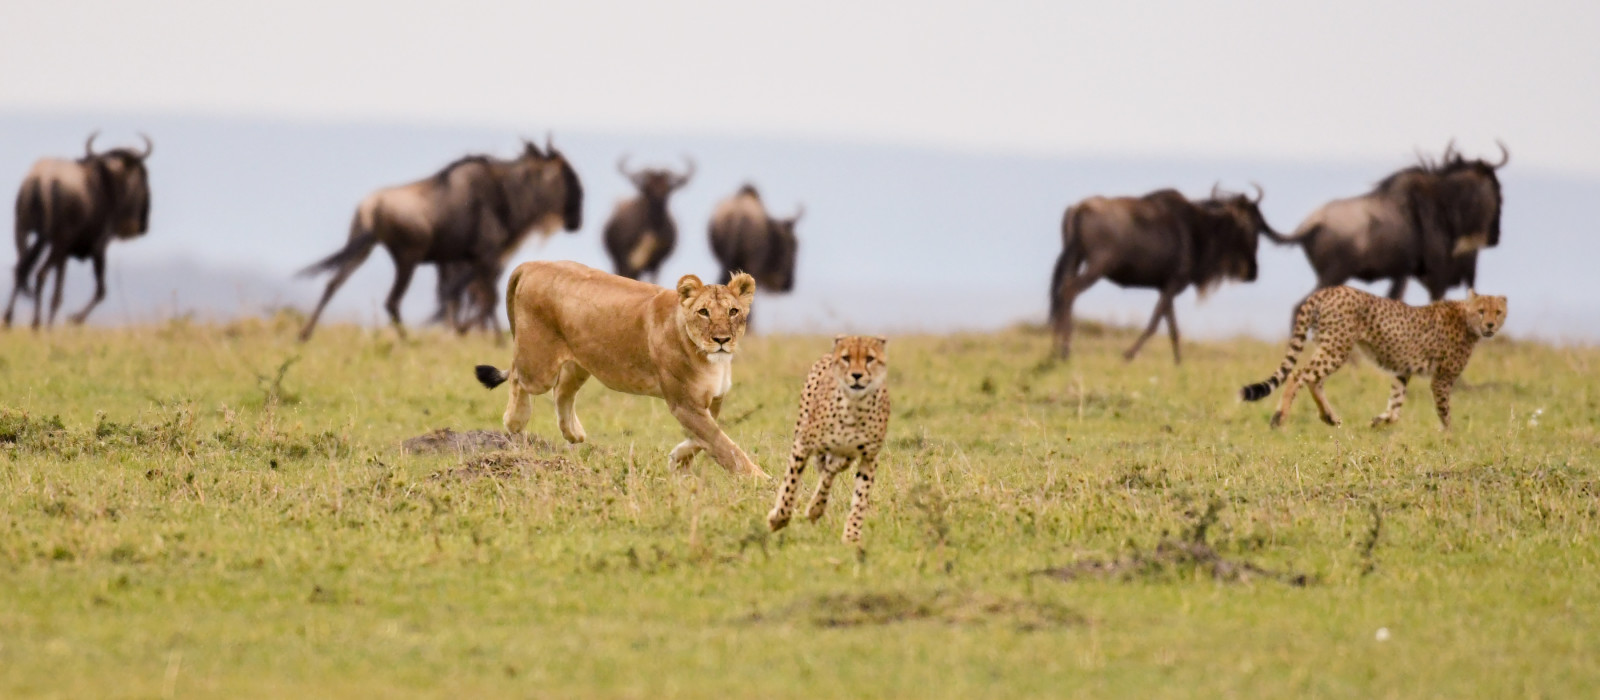 A female lion chases a cheetah with wildebeest in the background in a savannah in Masai Mara Game Reserve, Kenya